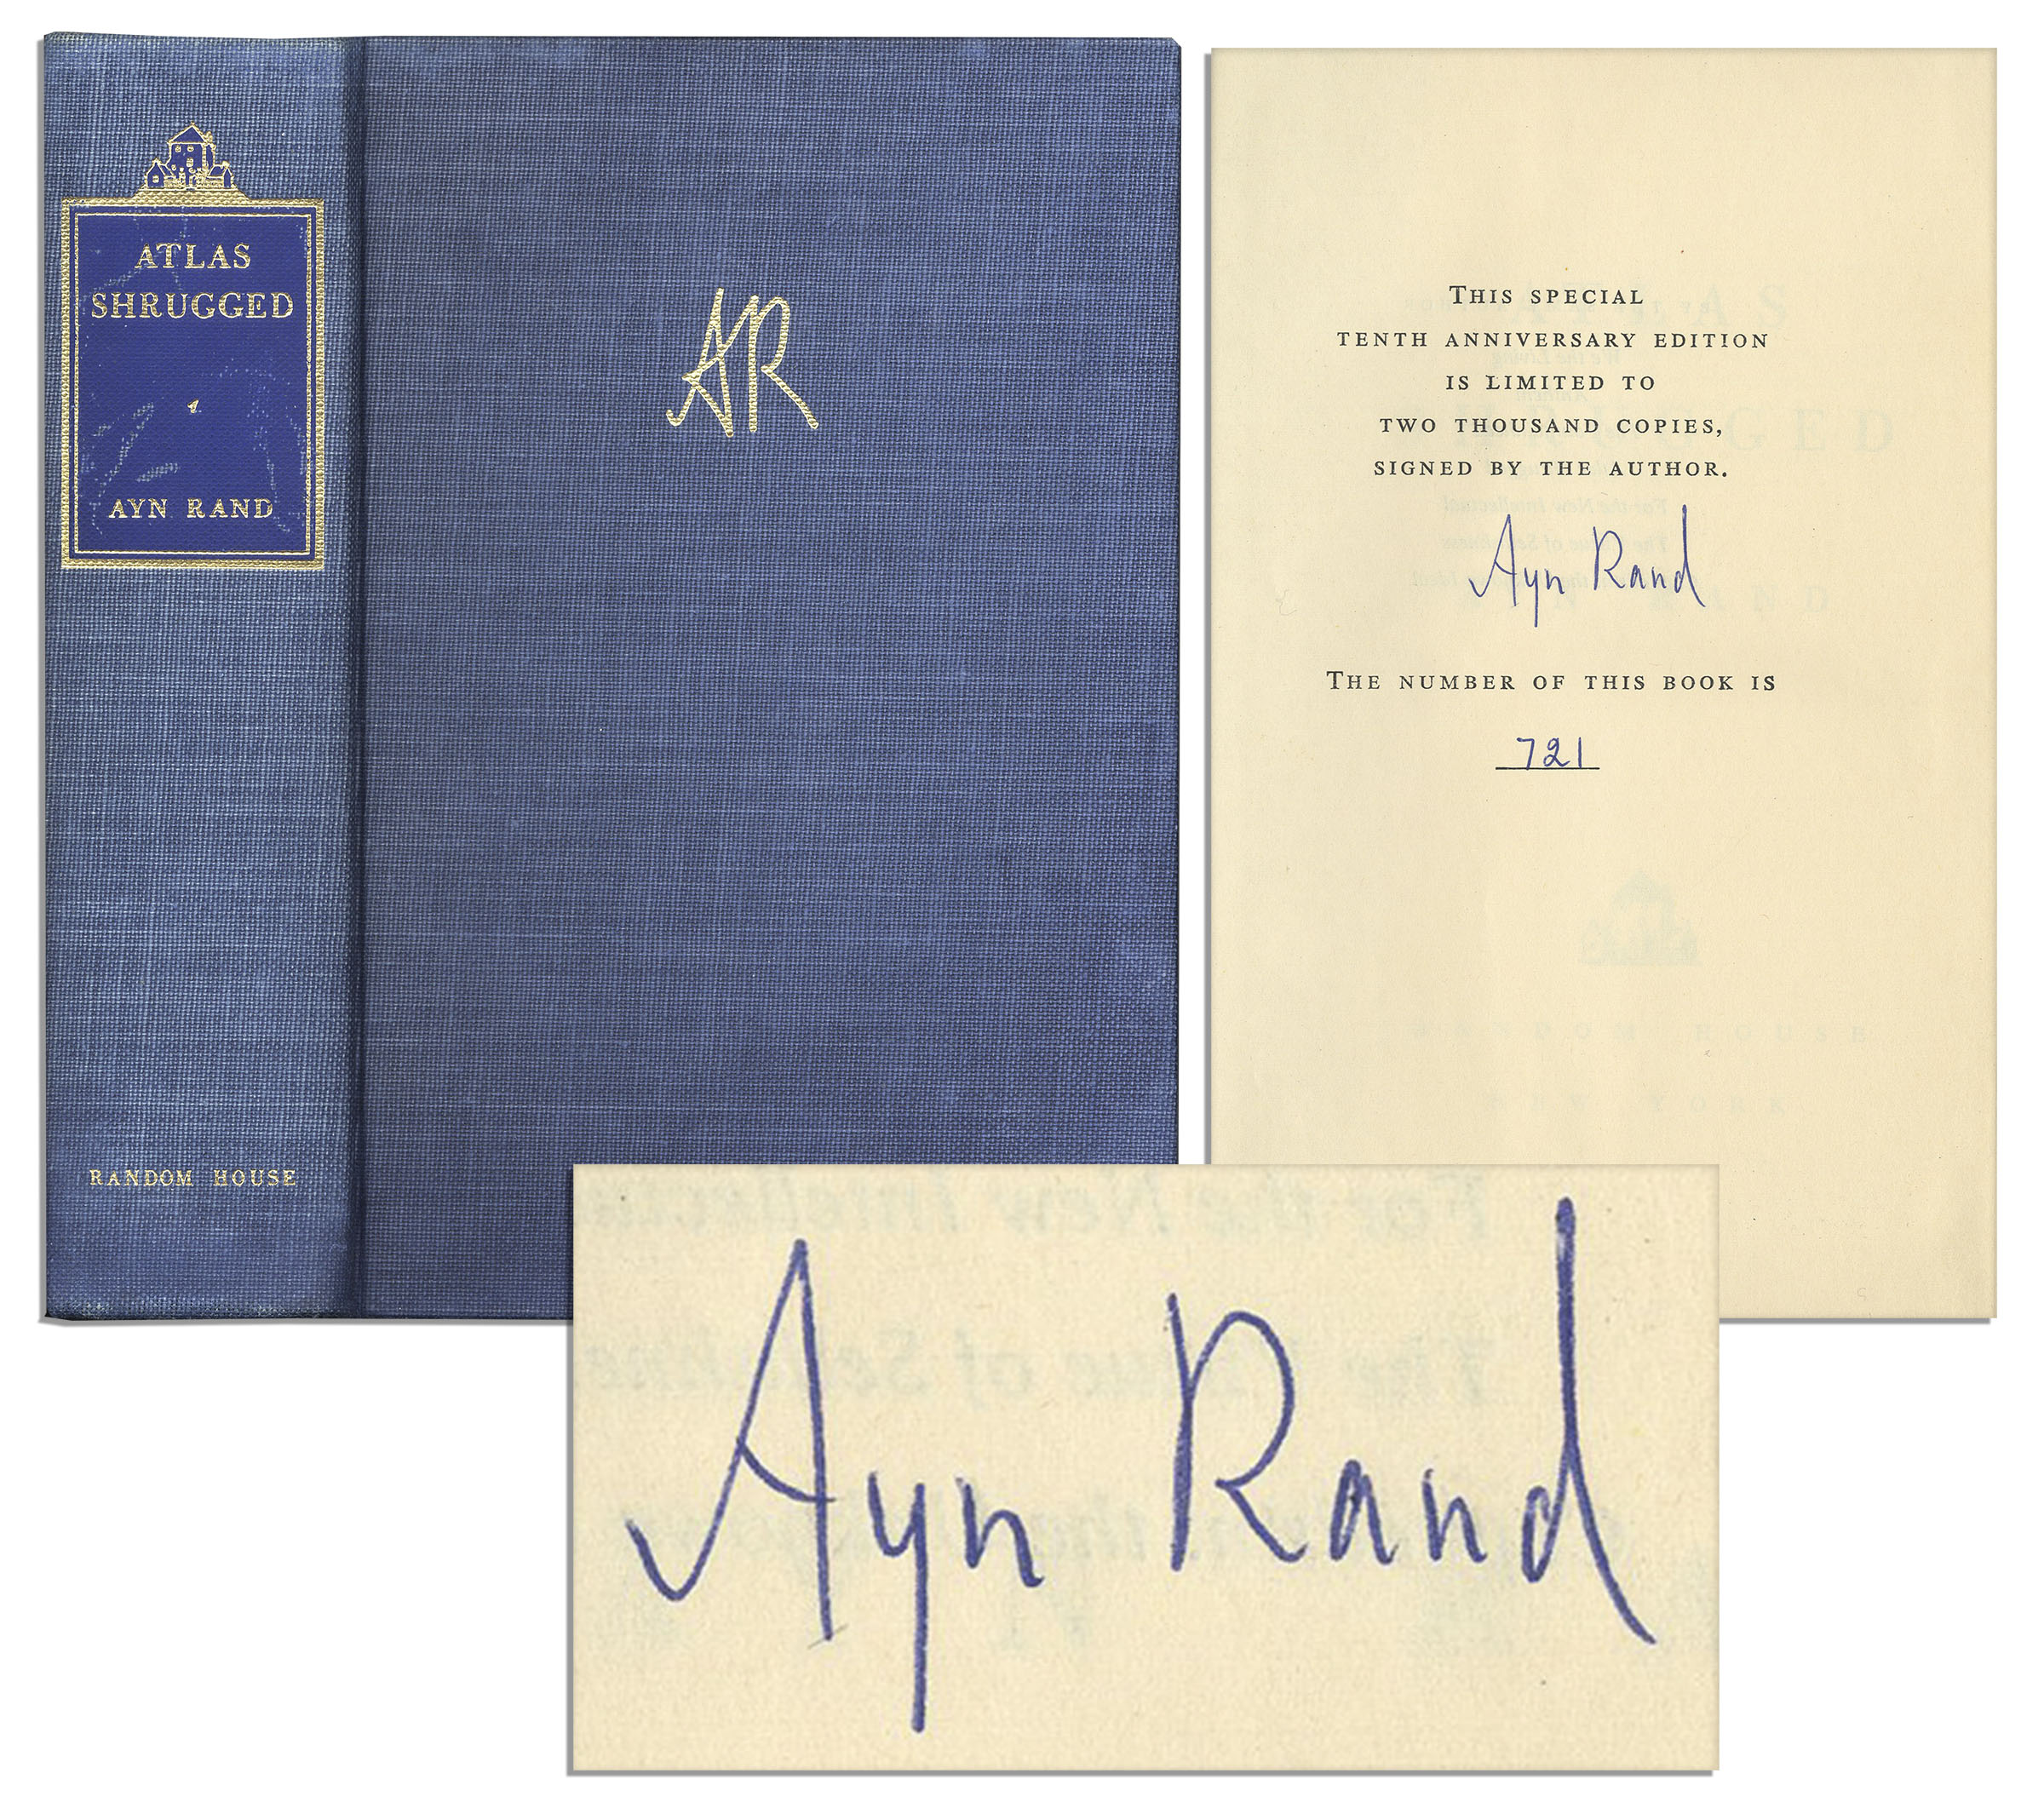 Ayn Rand first edition Ayn Rand Atlas Shrugged Signed